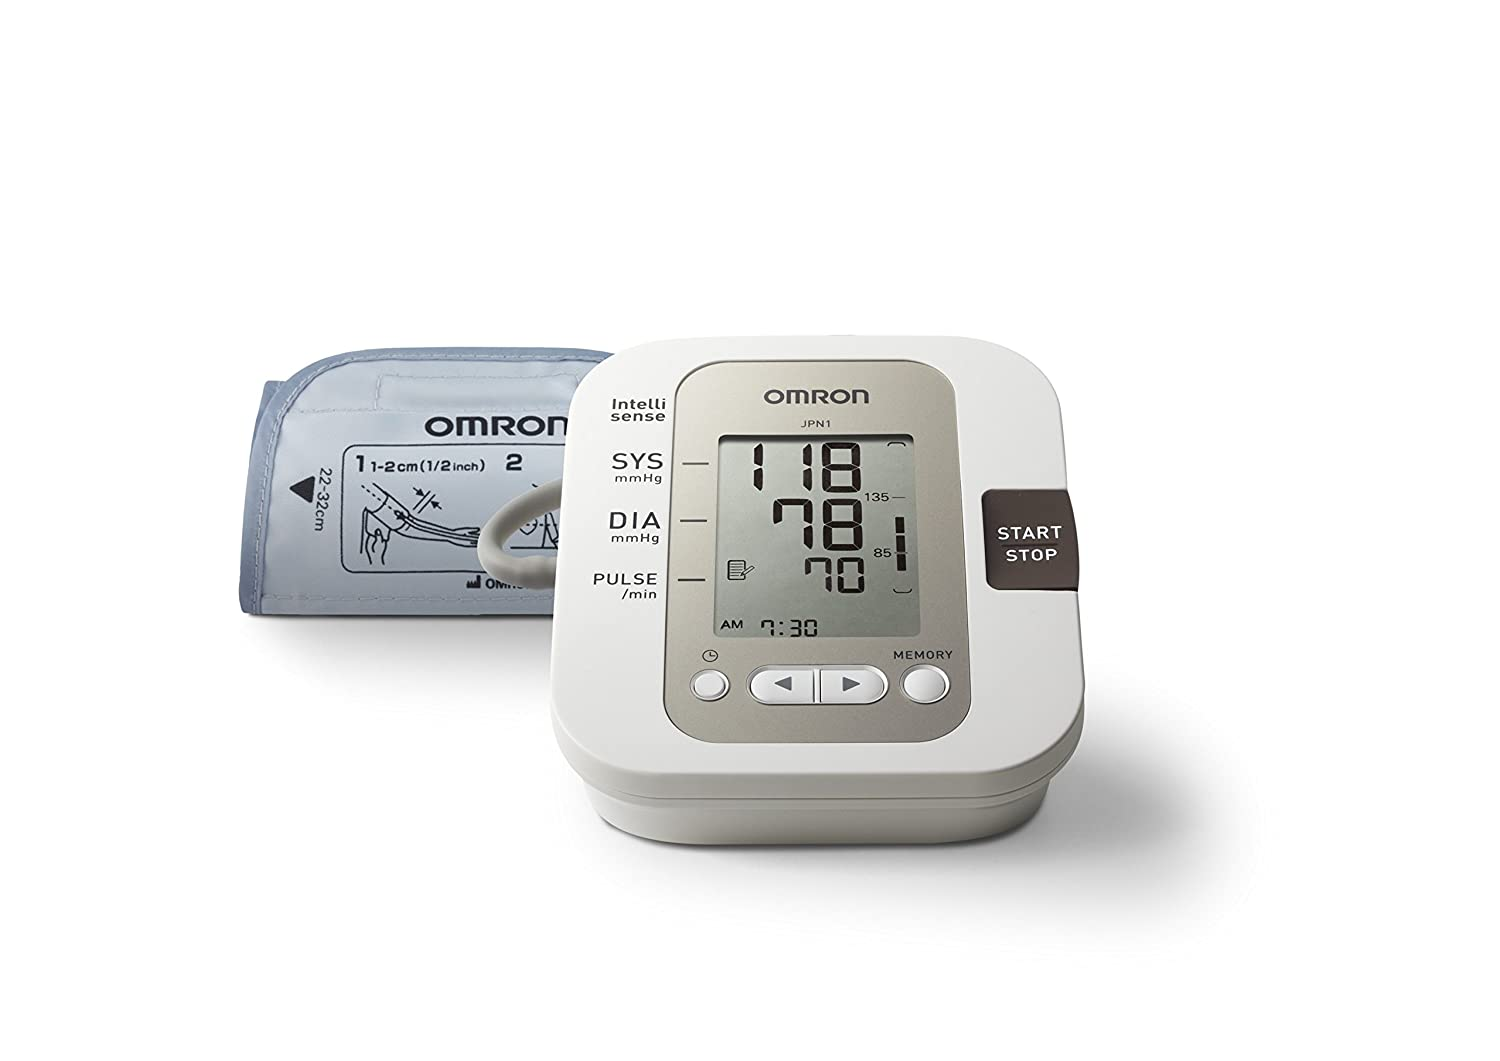 Omron JPN1 Automatic Blood Pressure Monitor